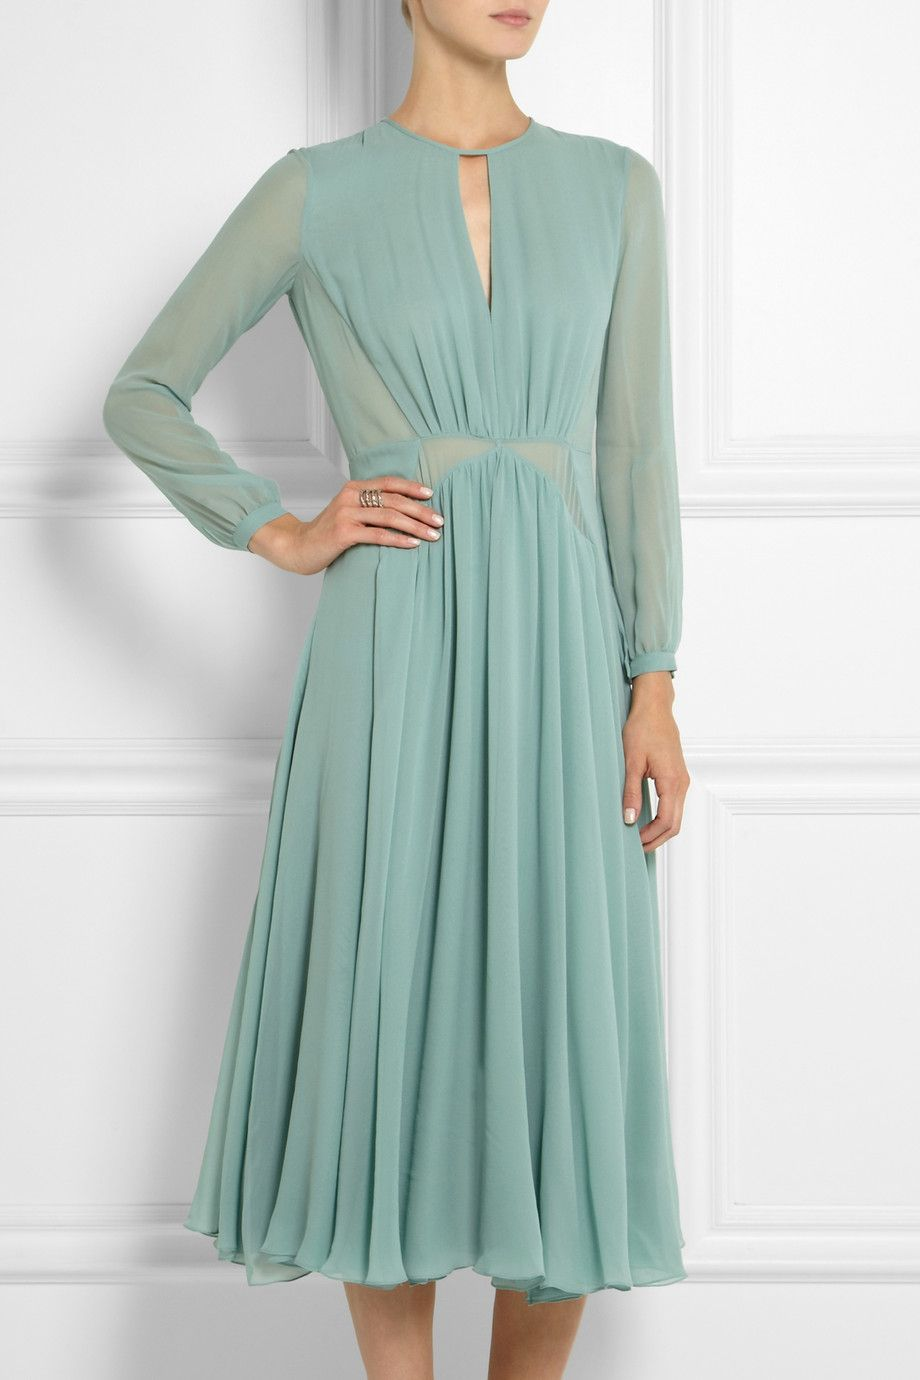 Pin by joey Sussman on OBLEKE in 10  Chiffon midi dress, Shifon